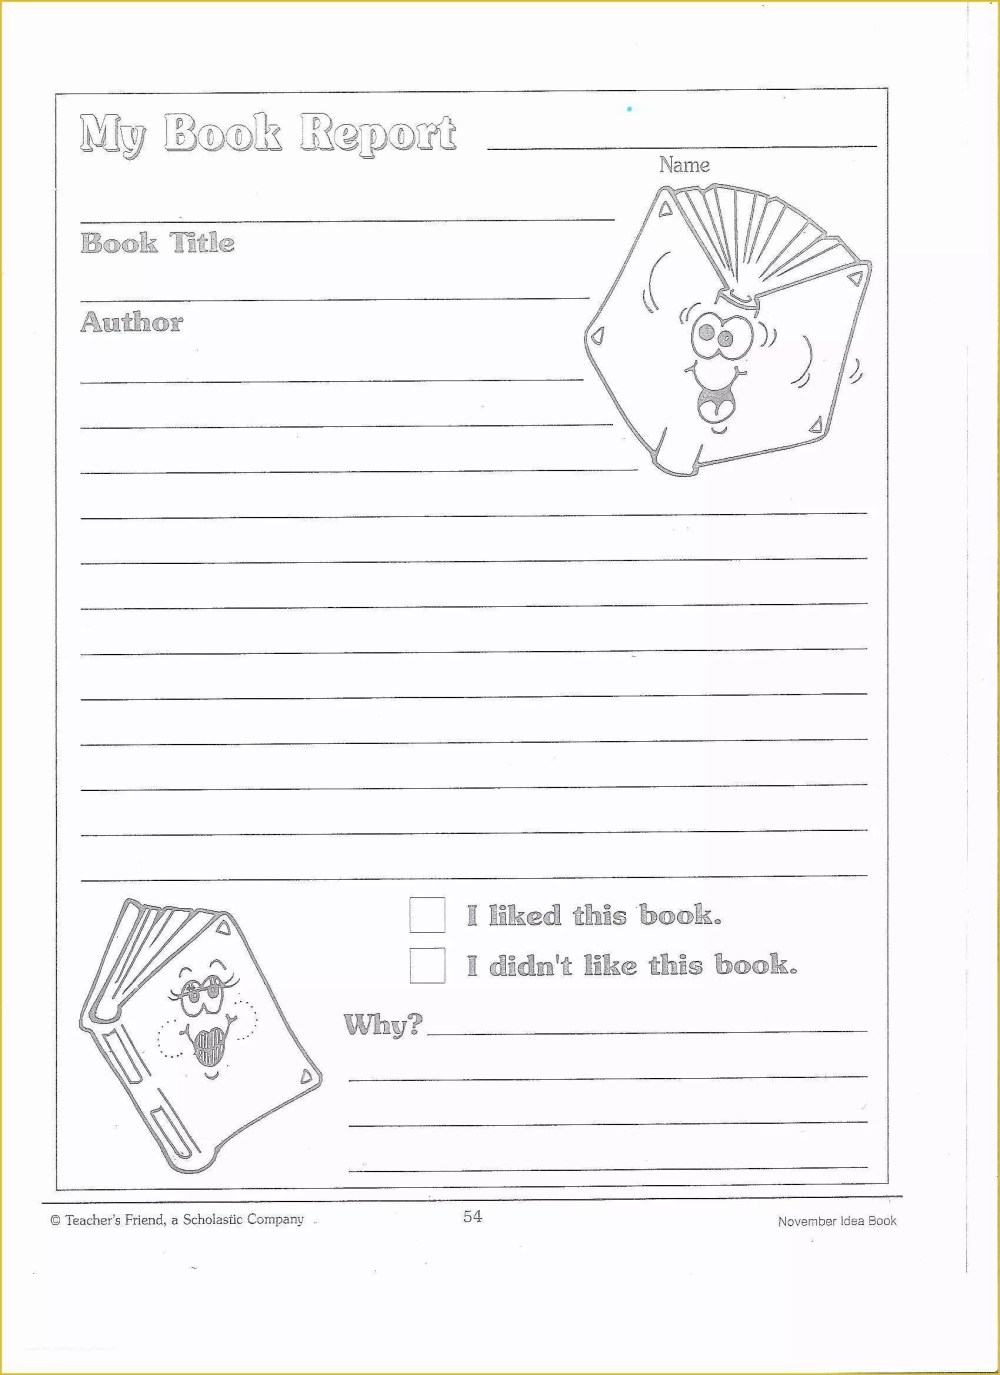 medium resolution of Robin Hood Worksheet For 2nd Grade   Printable Worksheets and Activities  for Teachers